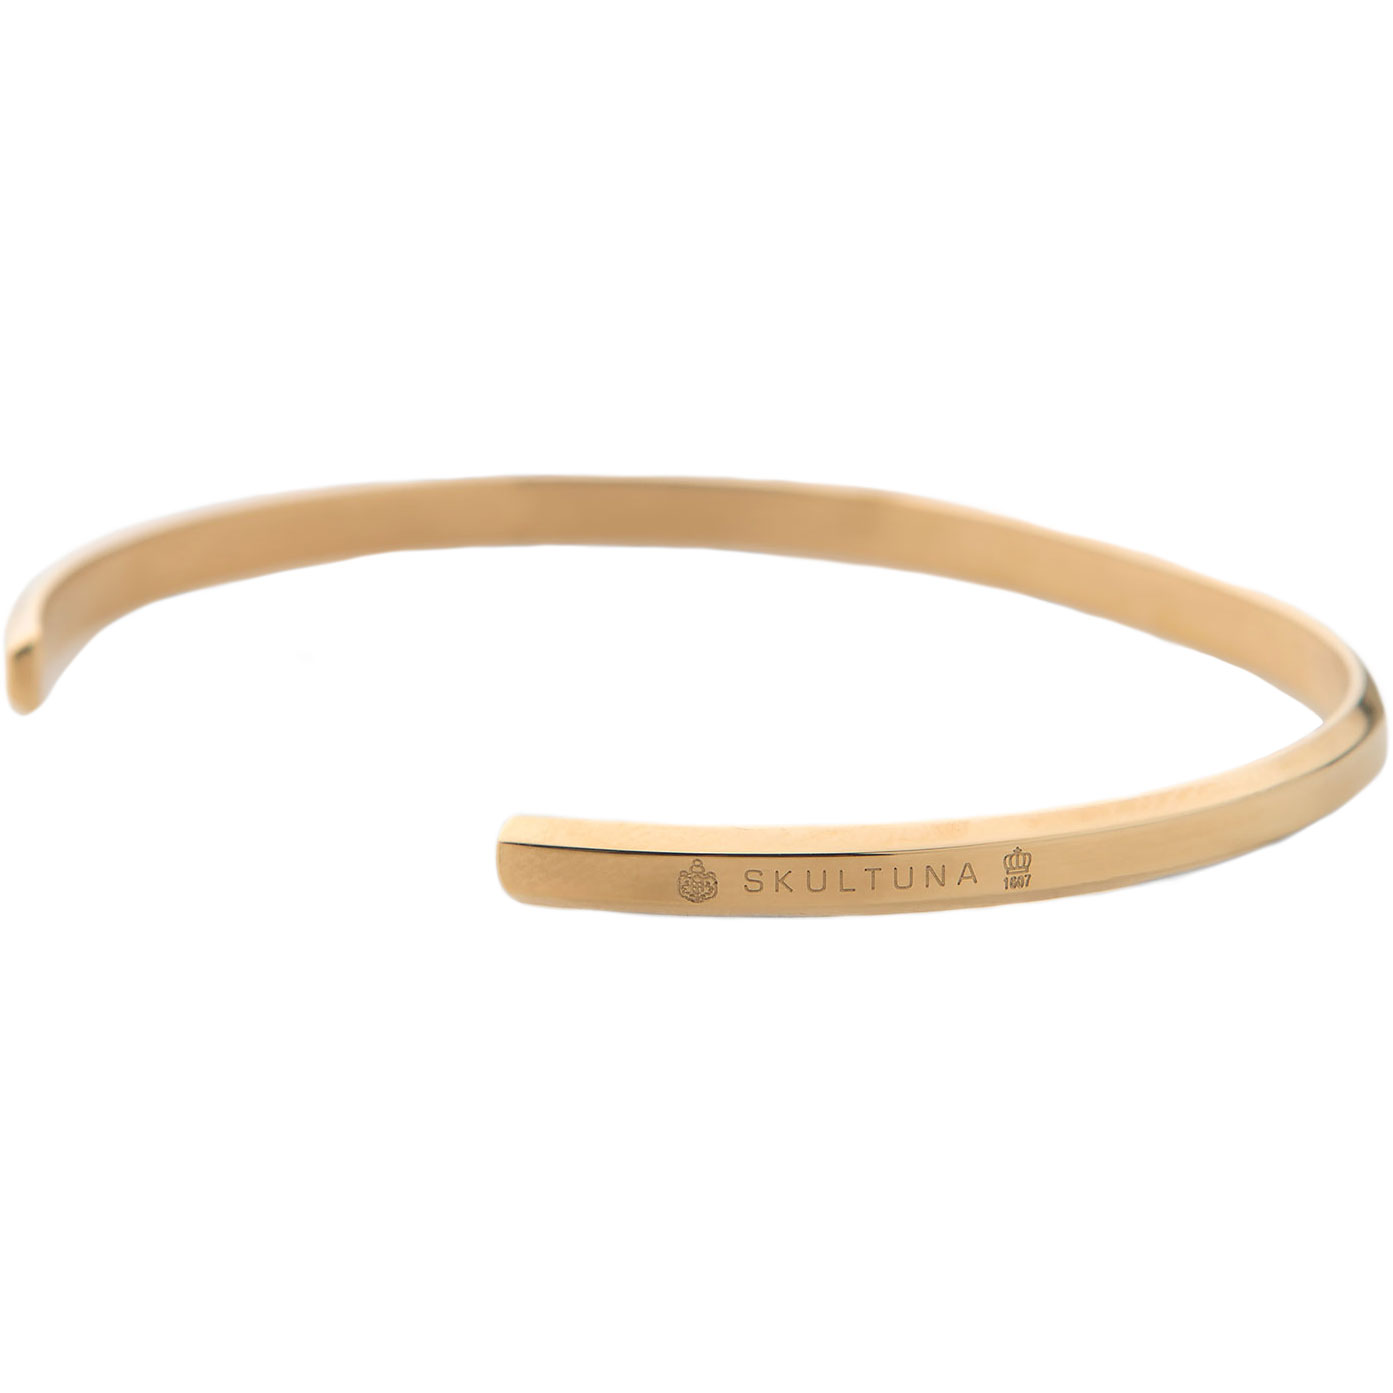 Skultuna-Icon Thin Armband Gold Plated, 65 mm